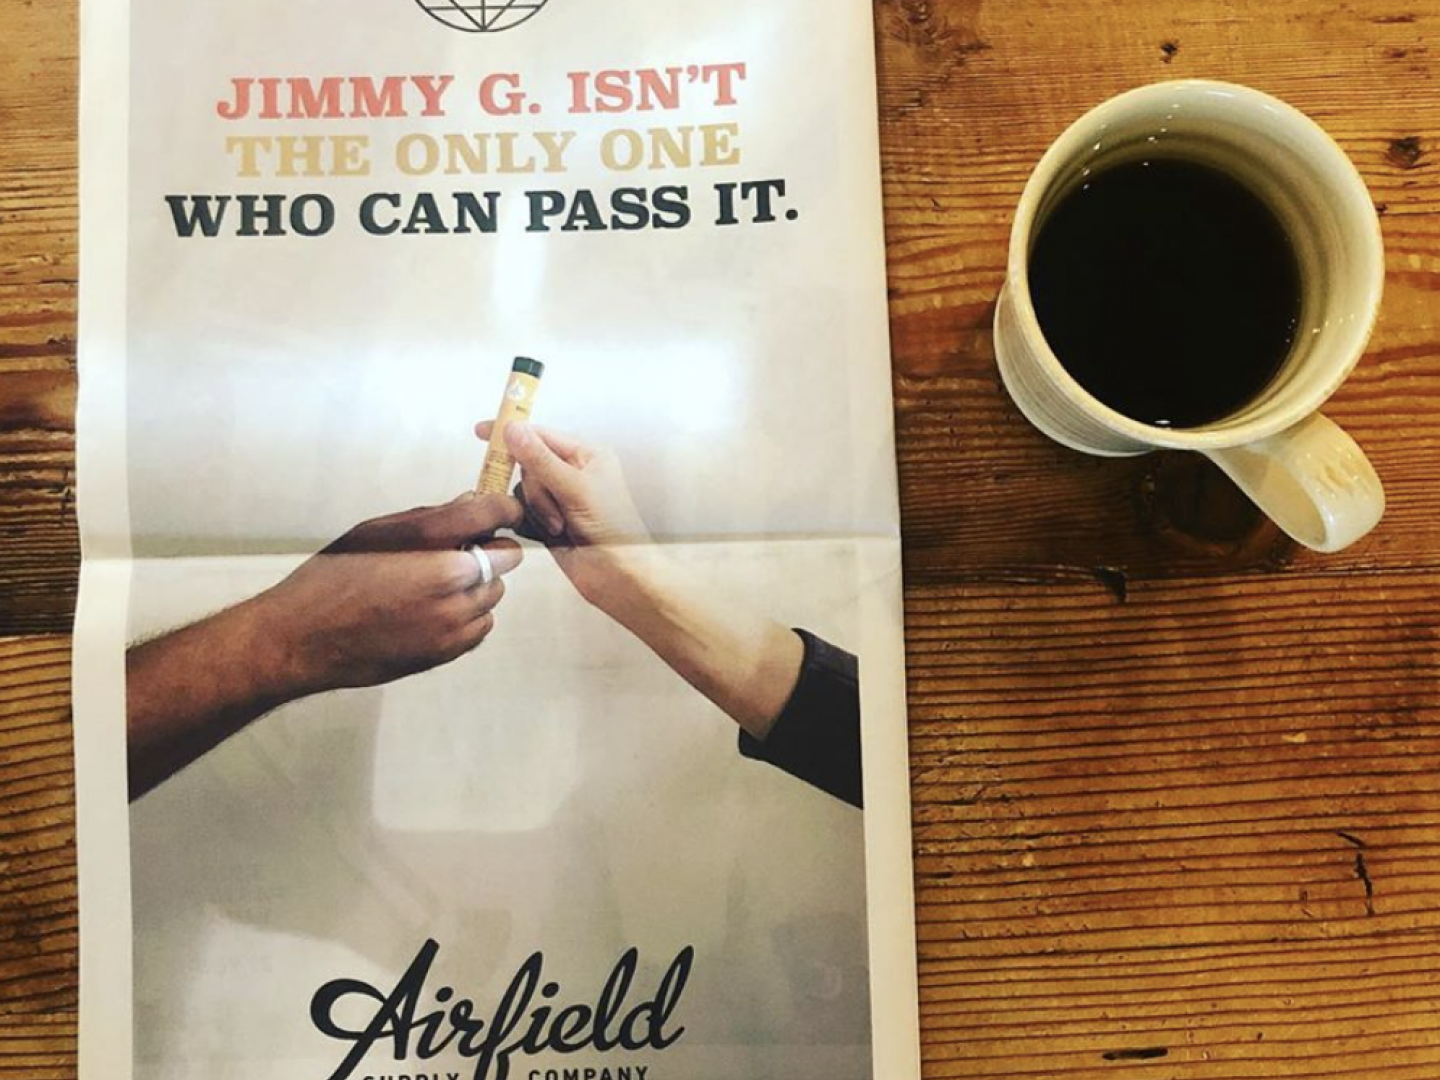 Airfield Supply Company: The Perfect Pass: A First-Ever Campaign for Cannabis